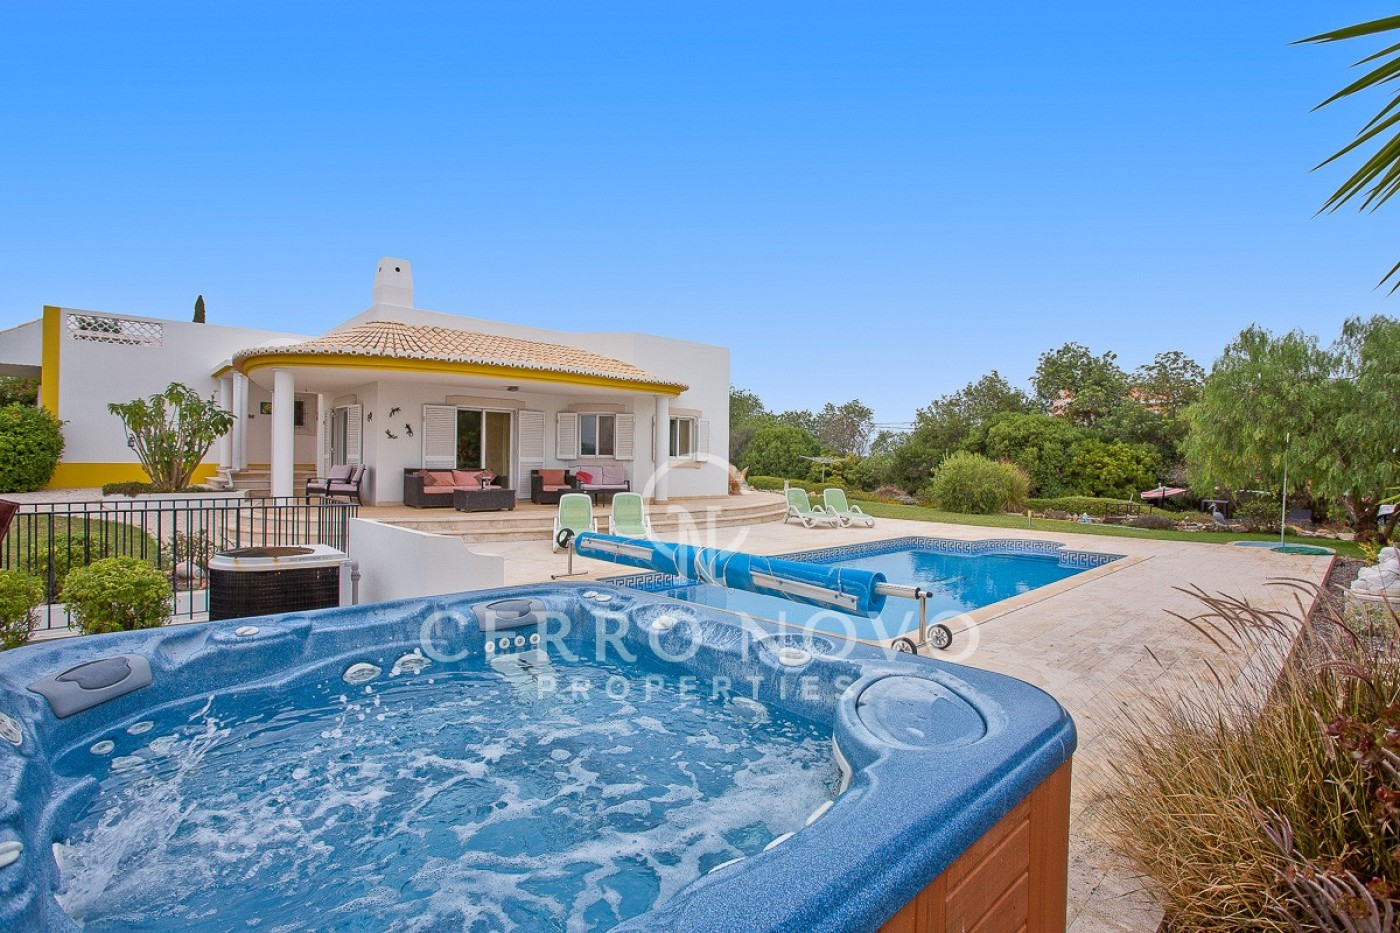 Four (3+1) bedroom villa with lovely gardens and heated pool